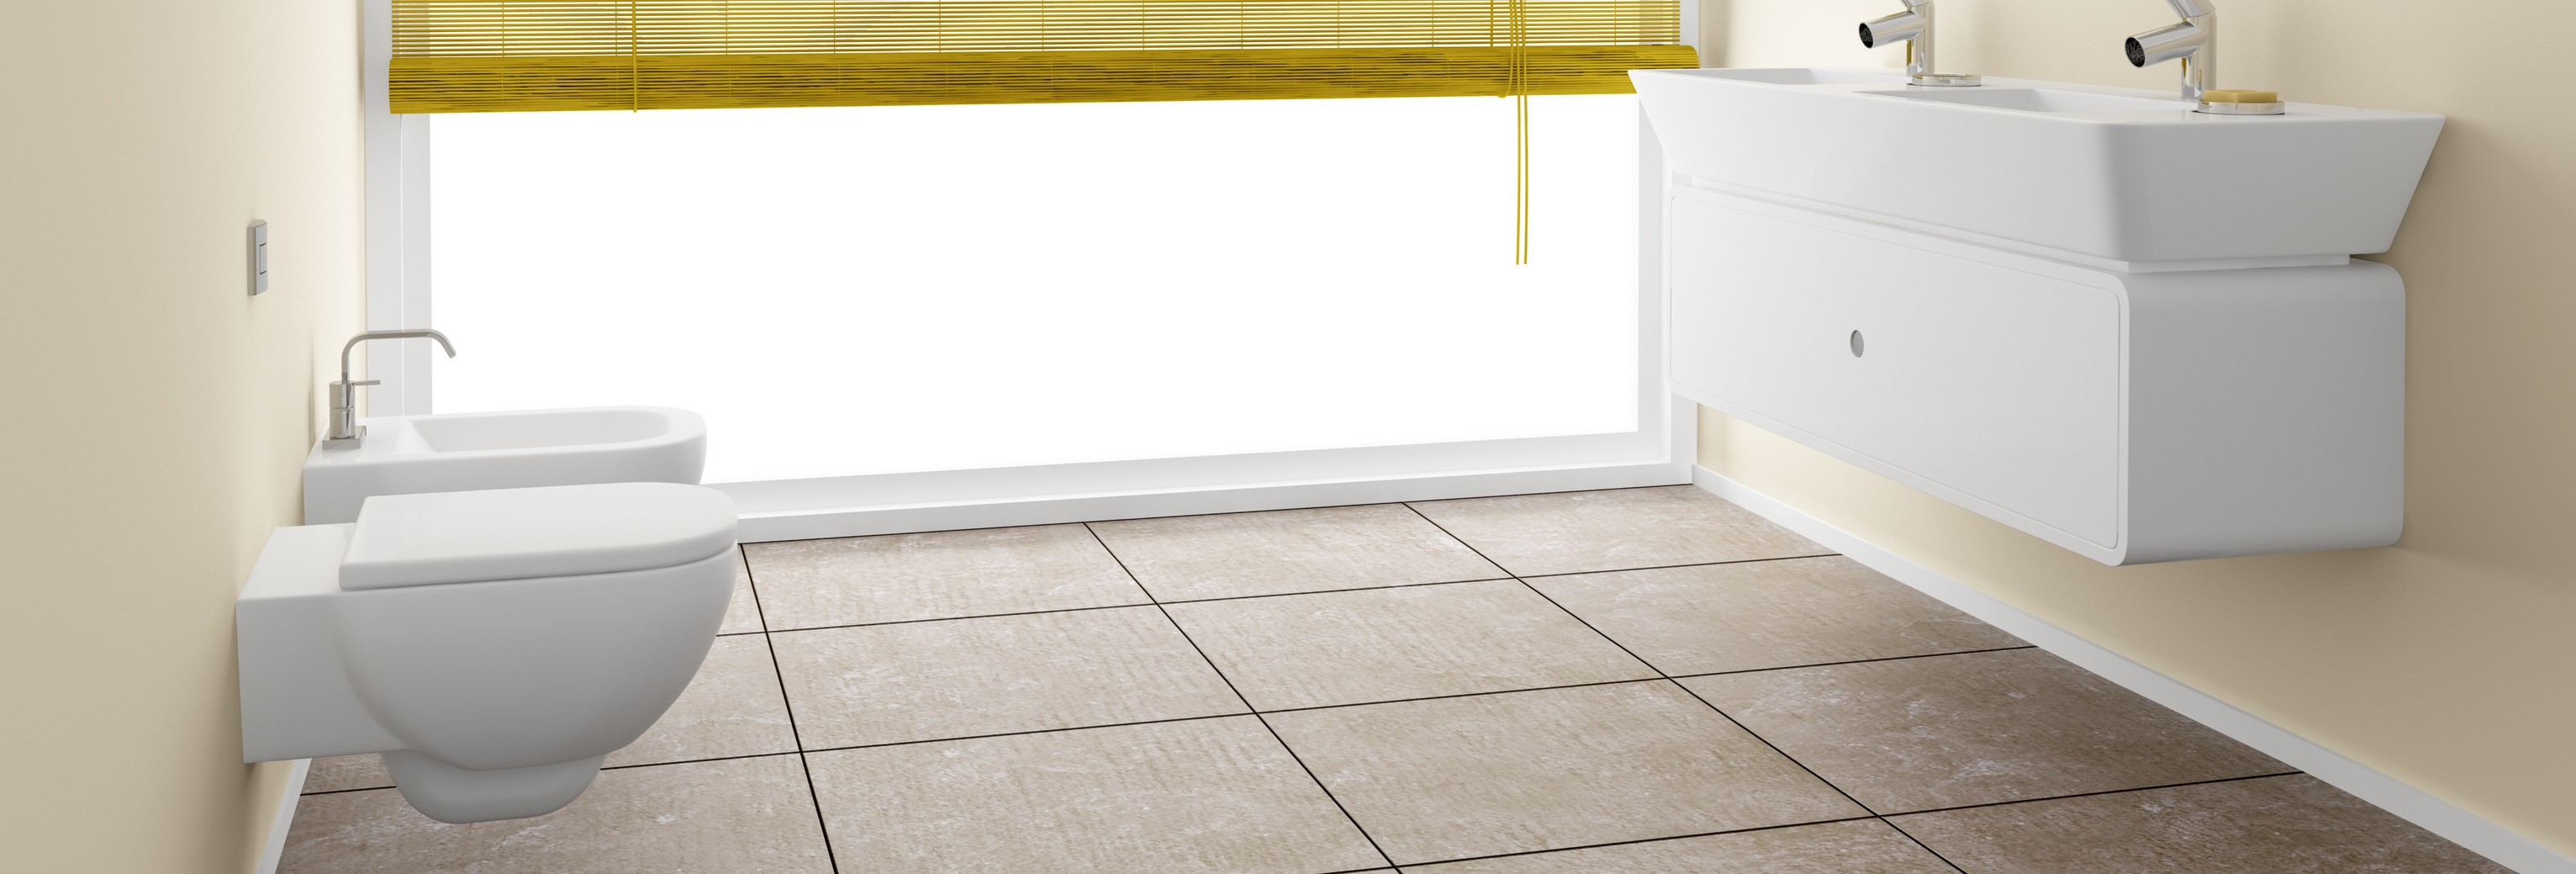 NonHarmful Ways to Clean Bathroom Tile Grout  Heavens